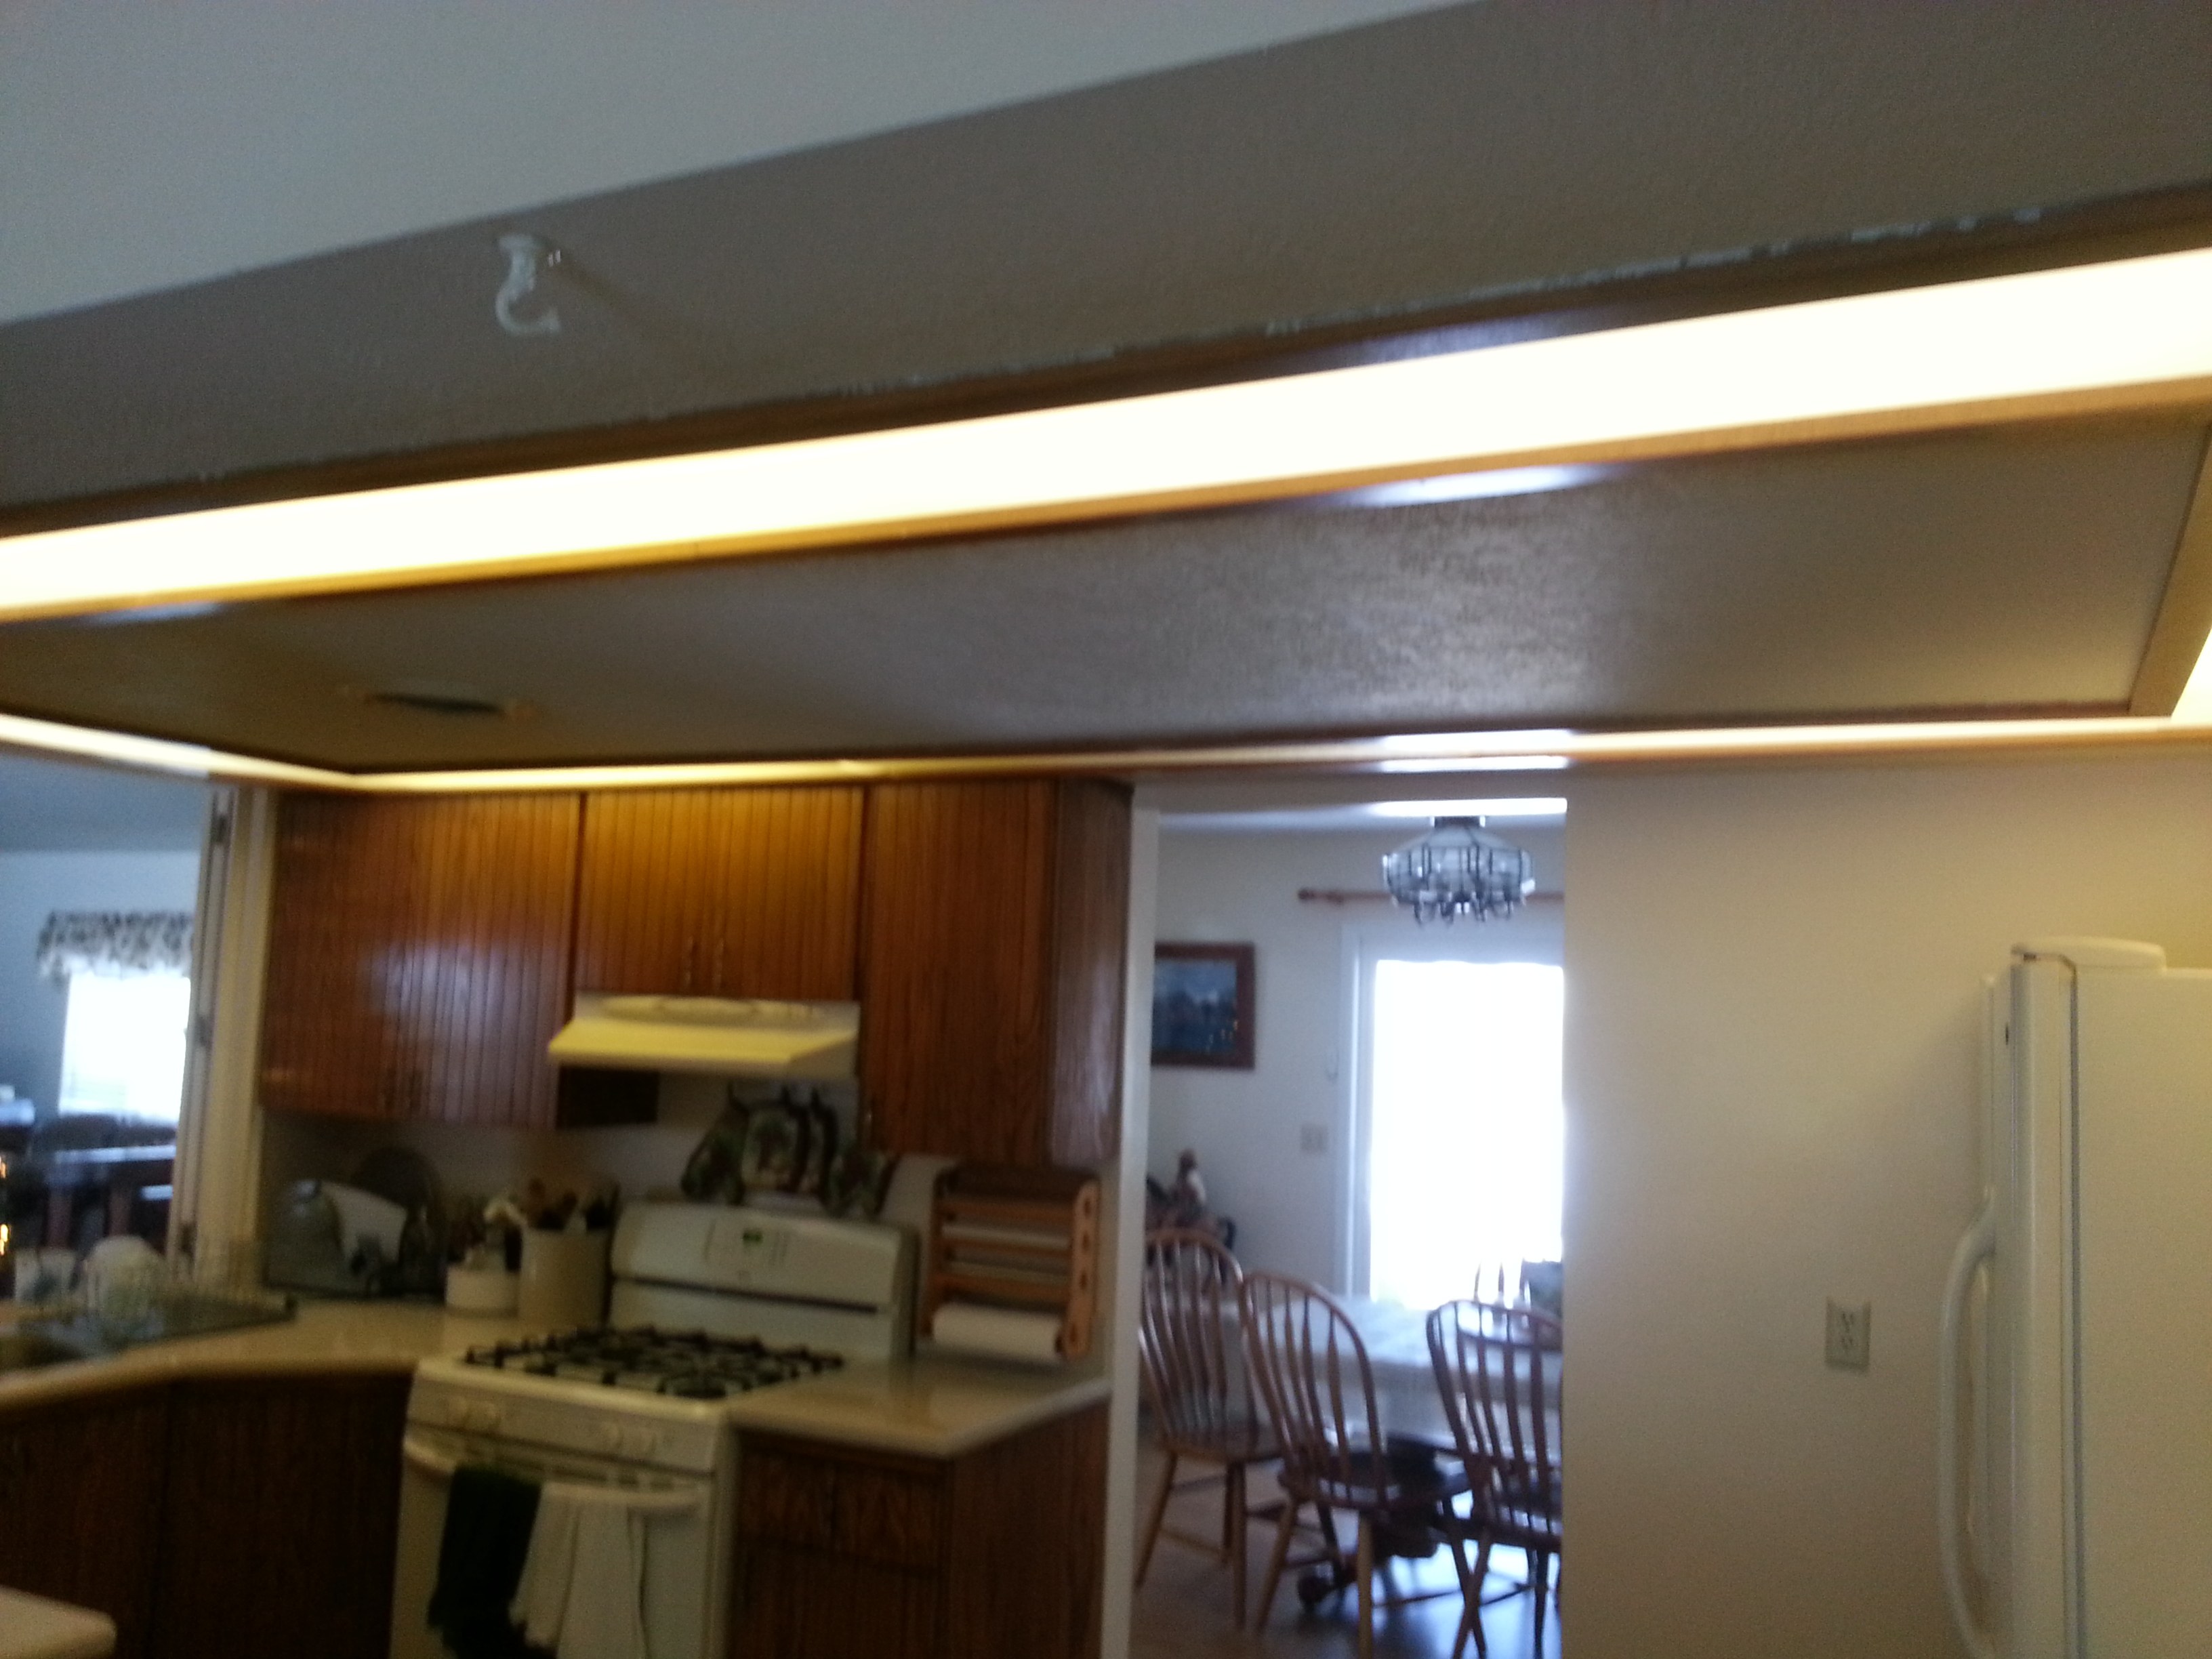 Kitchen drop ceiling lighting - Before This Outdated Lighting And Drop Ceiling Was A Drab And Needed To Go